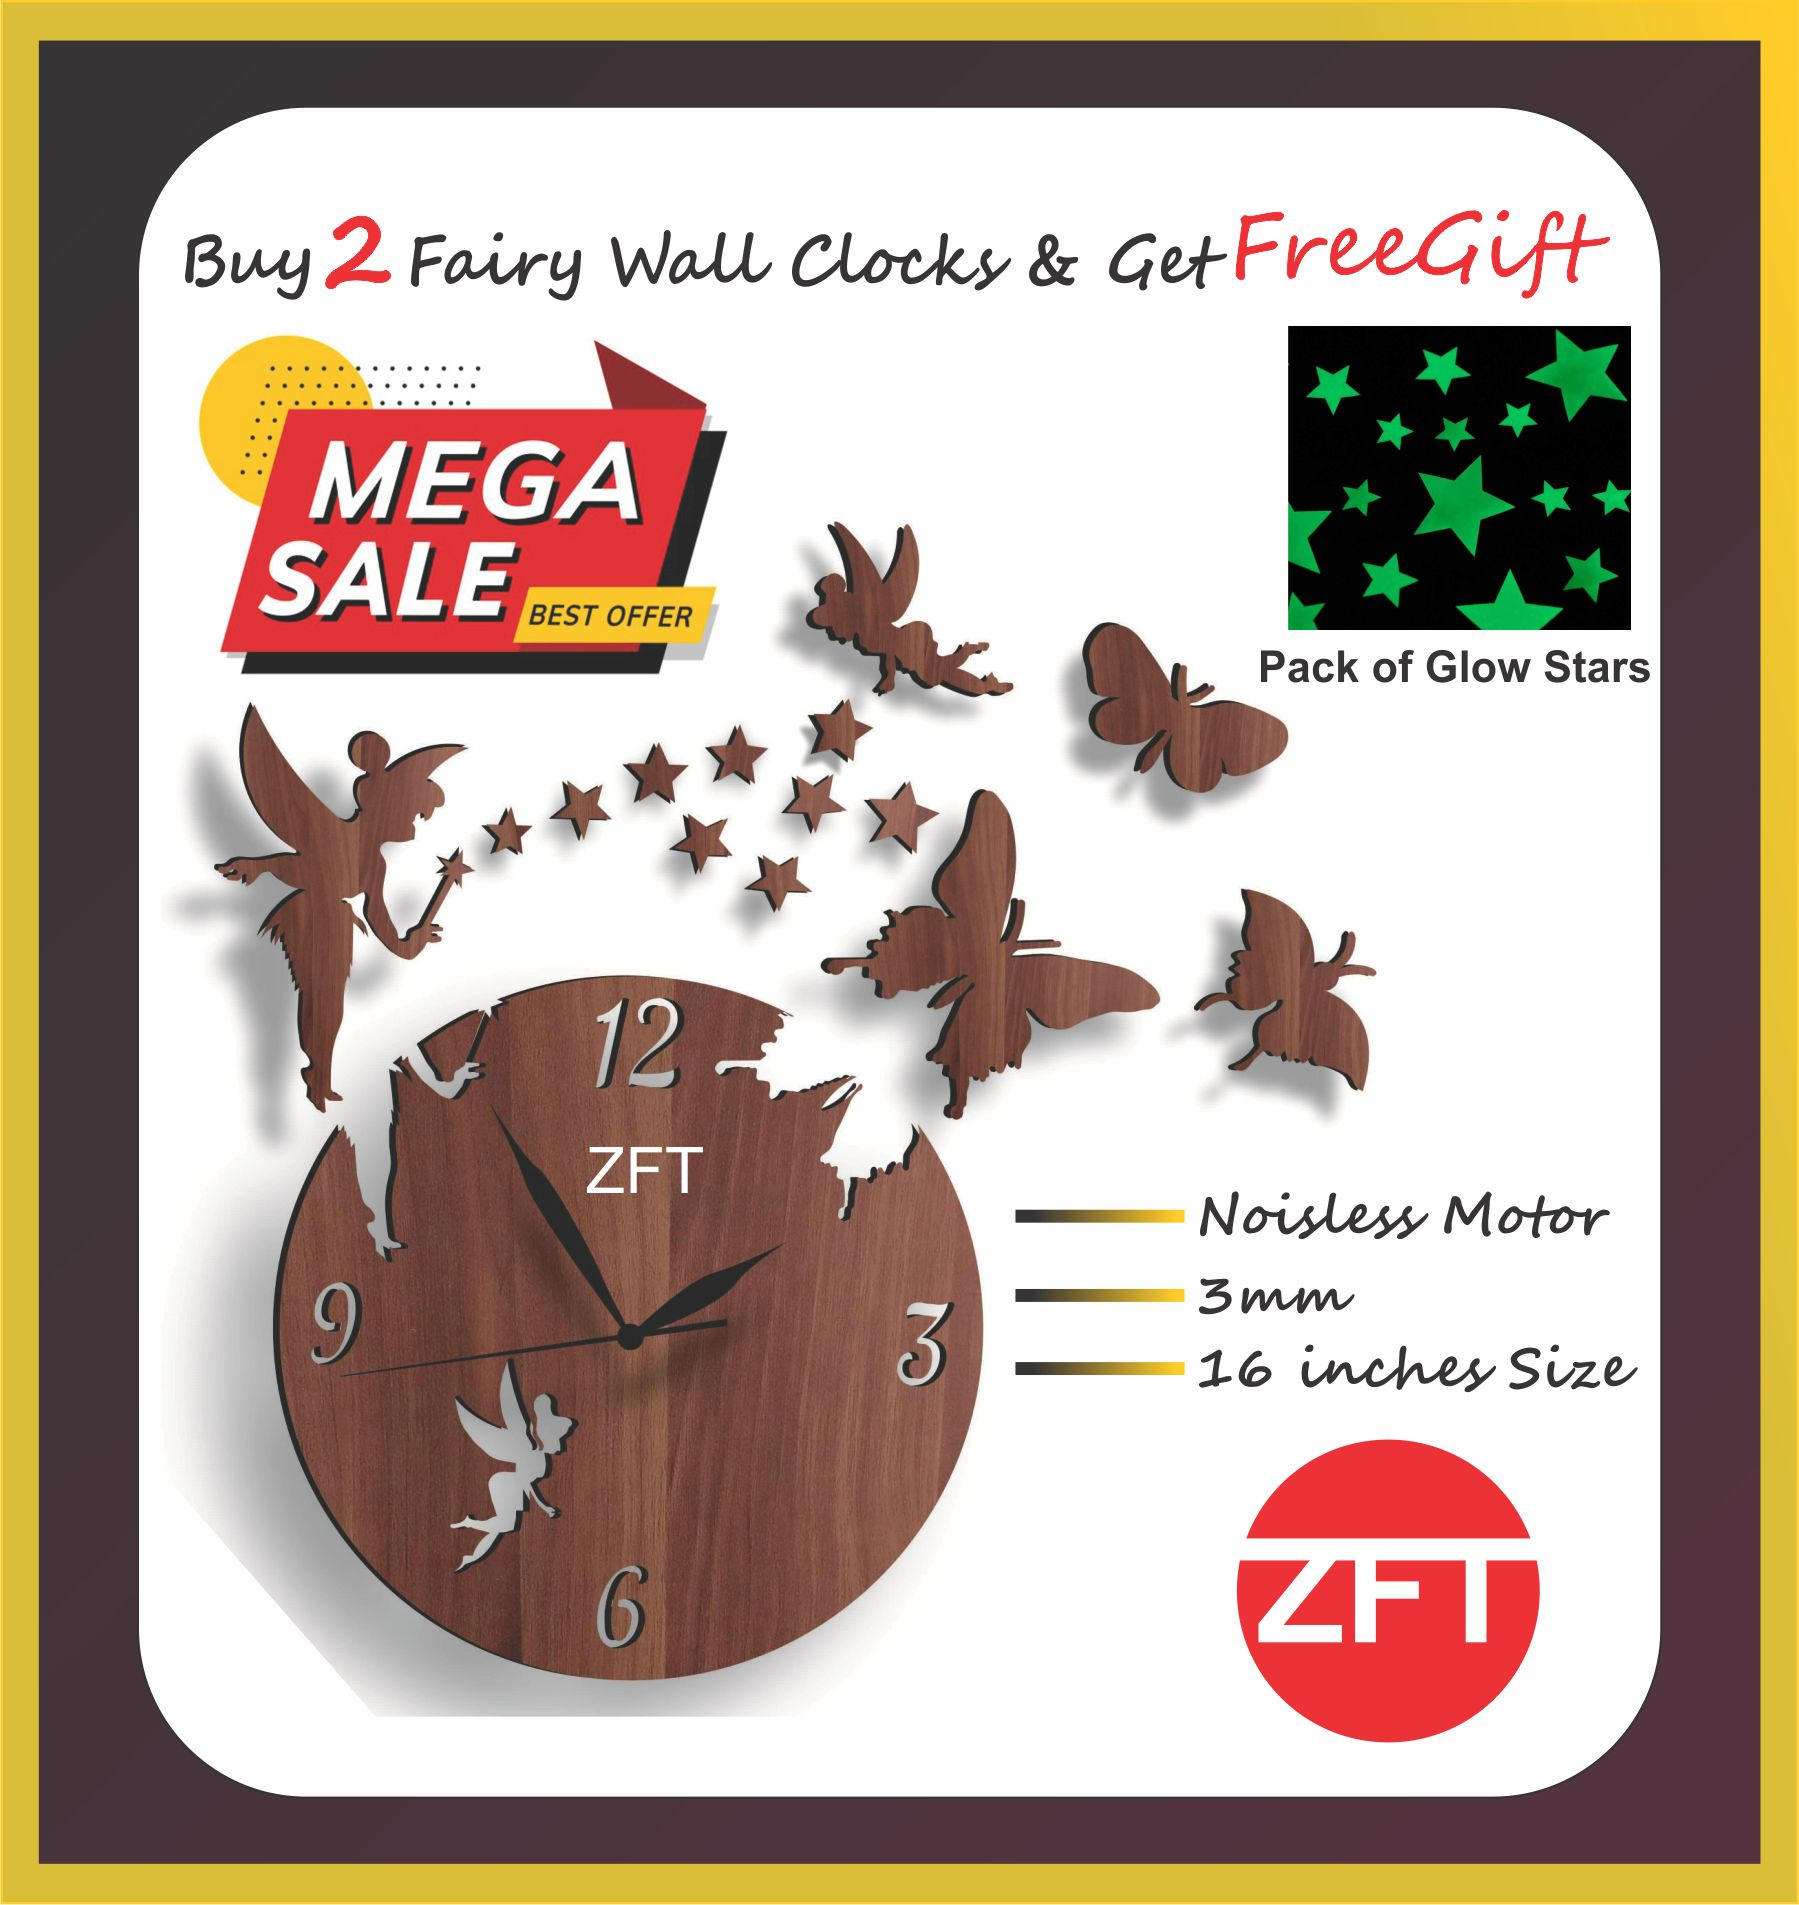 Modern New Fairy 3D DIY Laser Cut Wooden Wall Clock in MULTICOLOUR 12 Inches Size,Fairy With Stars,Angel & Butterflies For Home Decor,For Kids Room Wall Hanging Decoration Living Room Bedroom Home Office bedroom 3d fairy wood world map